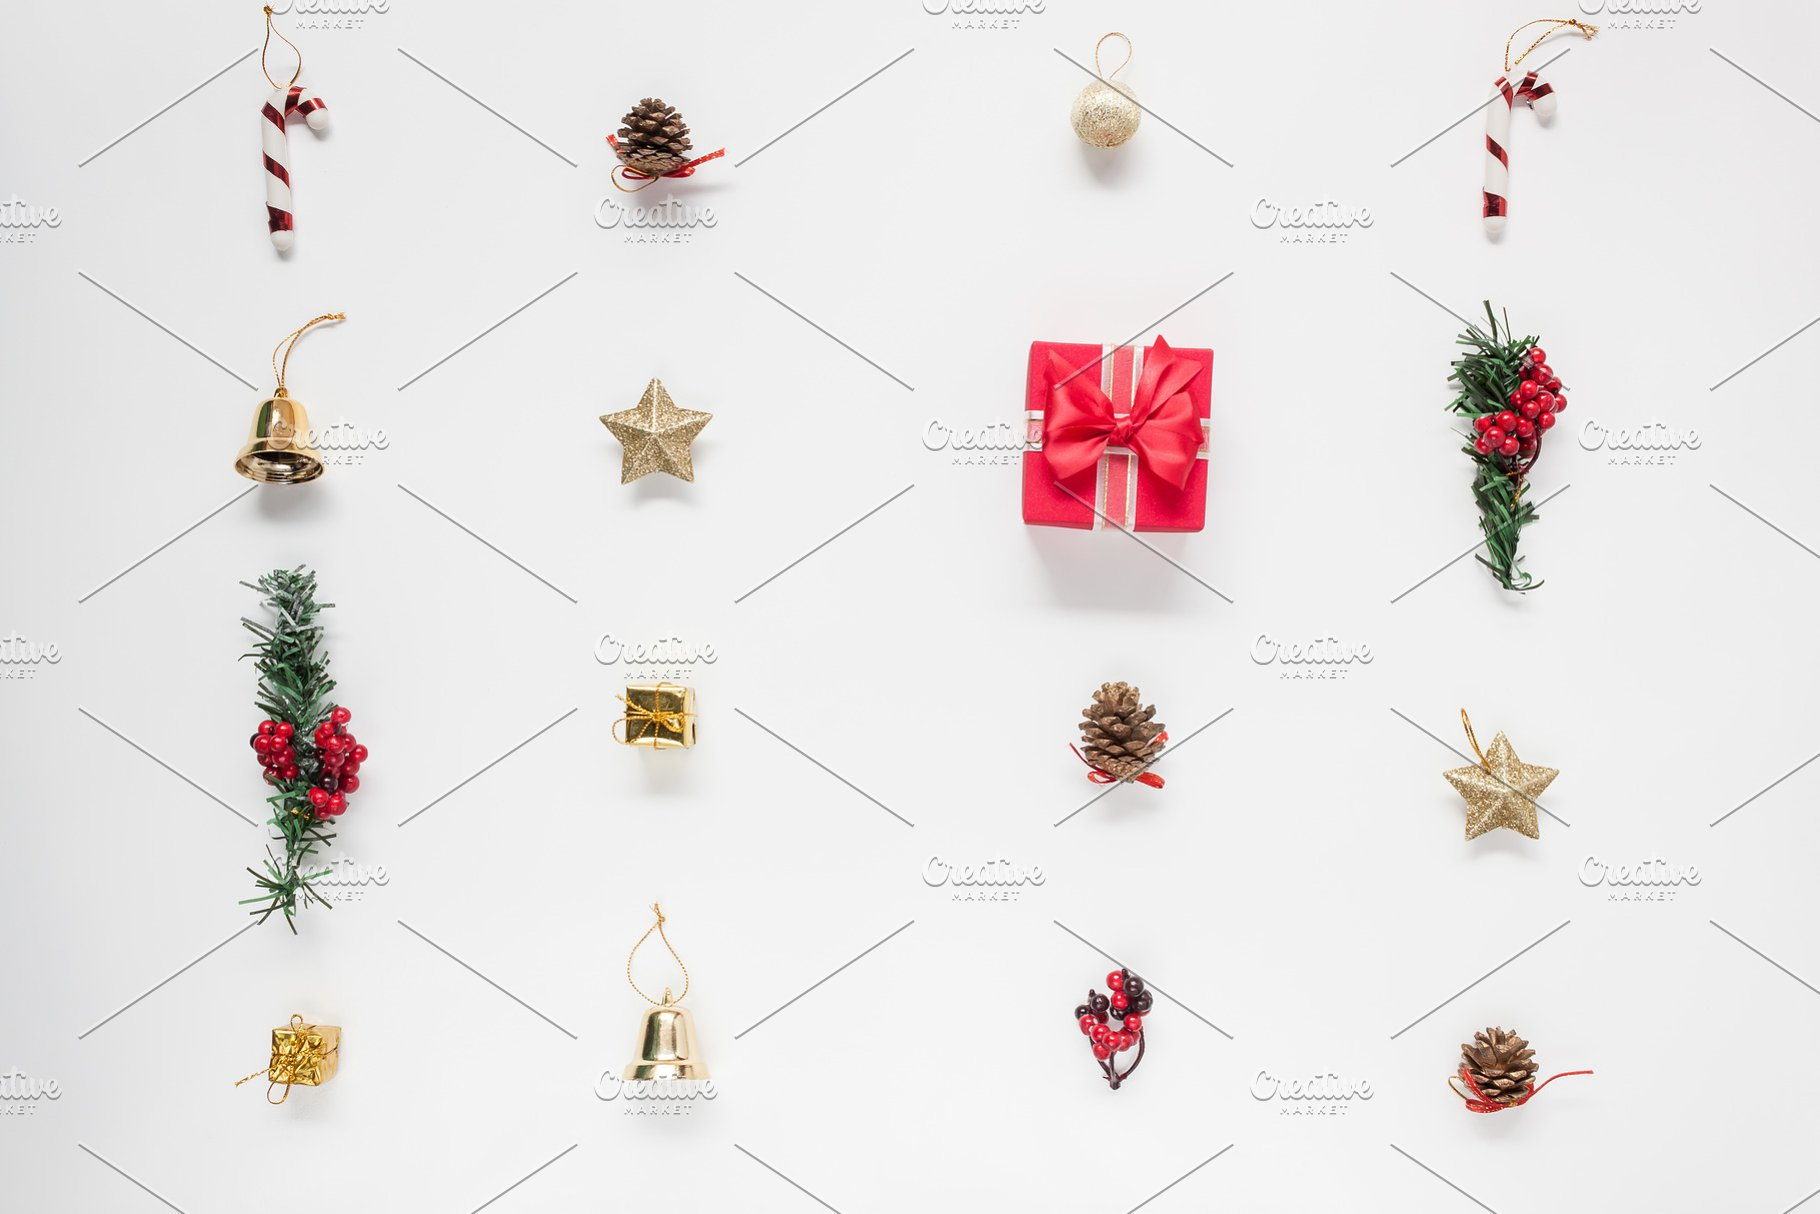 Essential Christmas Decorations.Top View Christmas Decoration